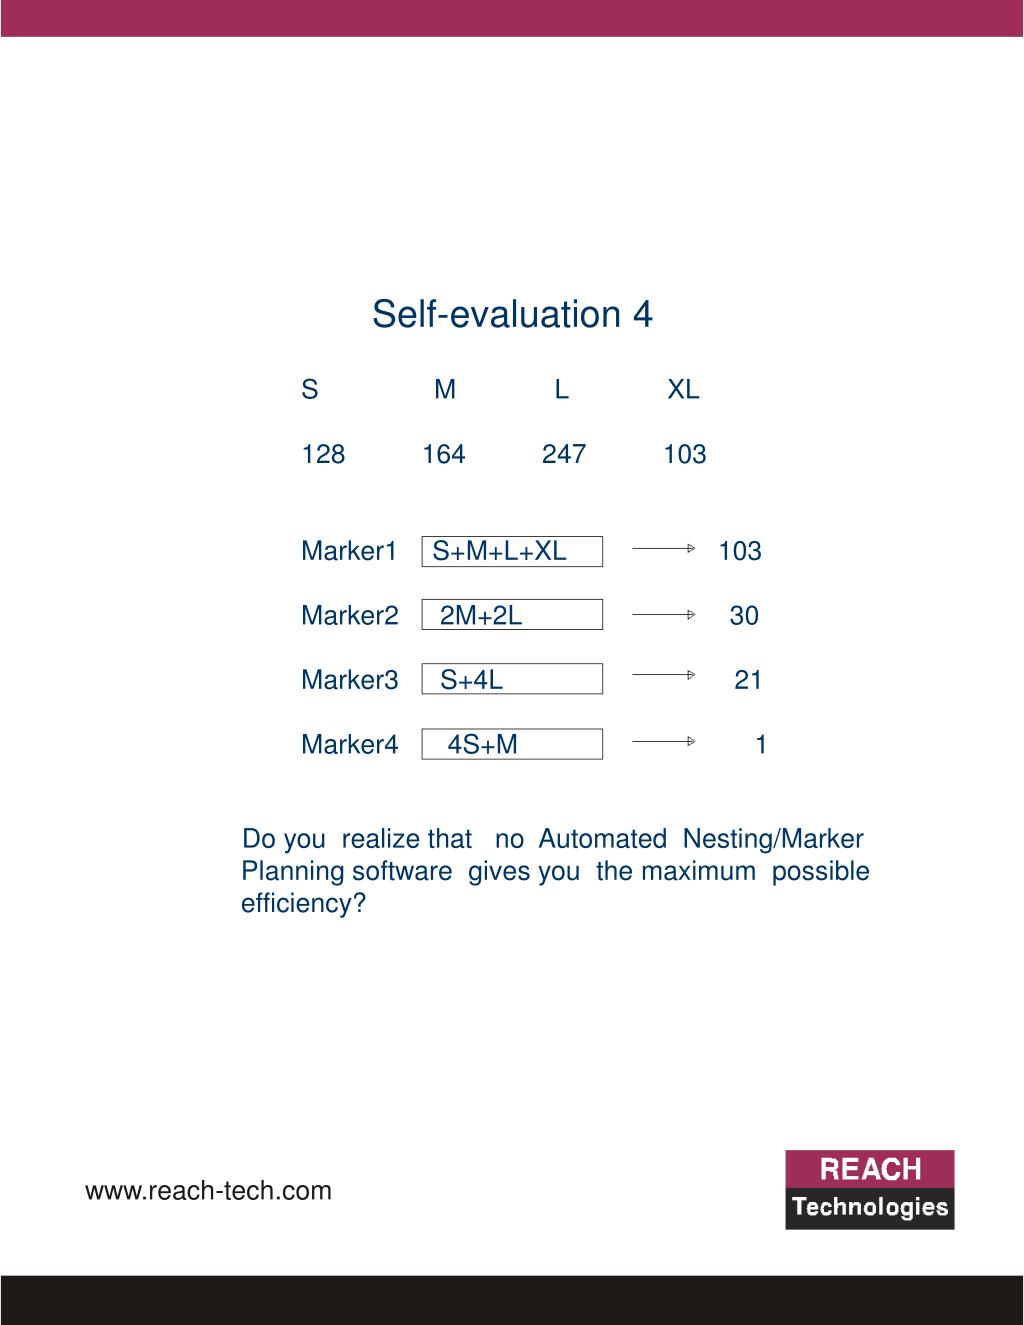 Self-evaluation 4